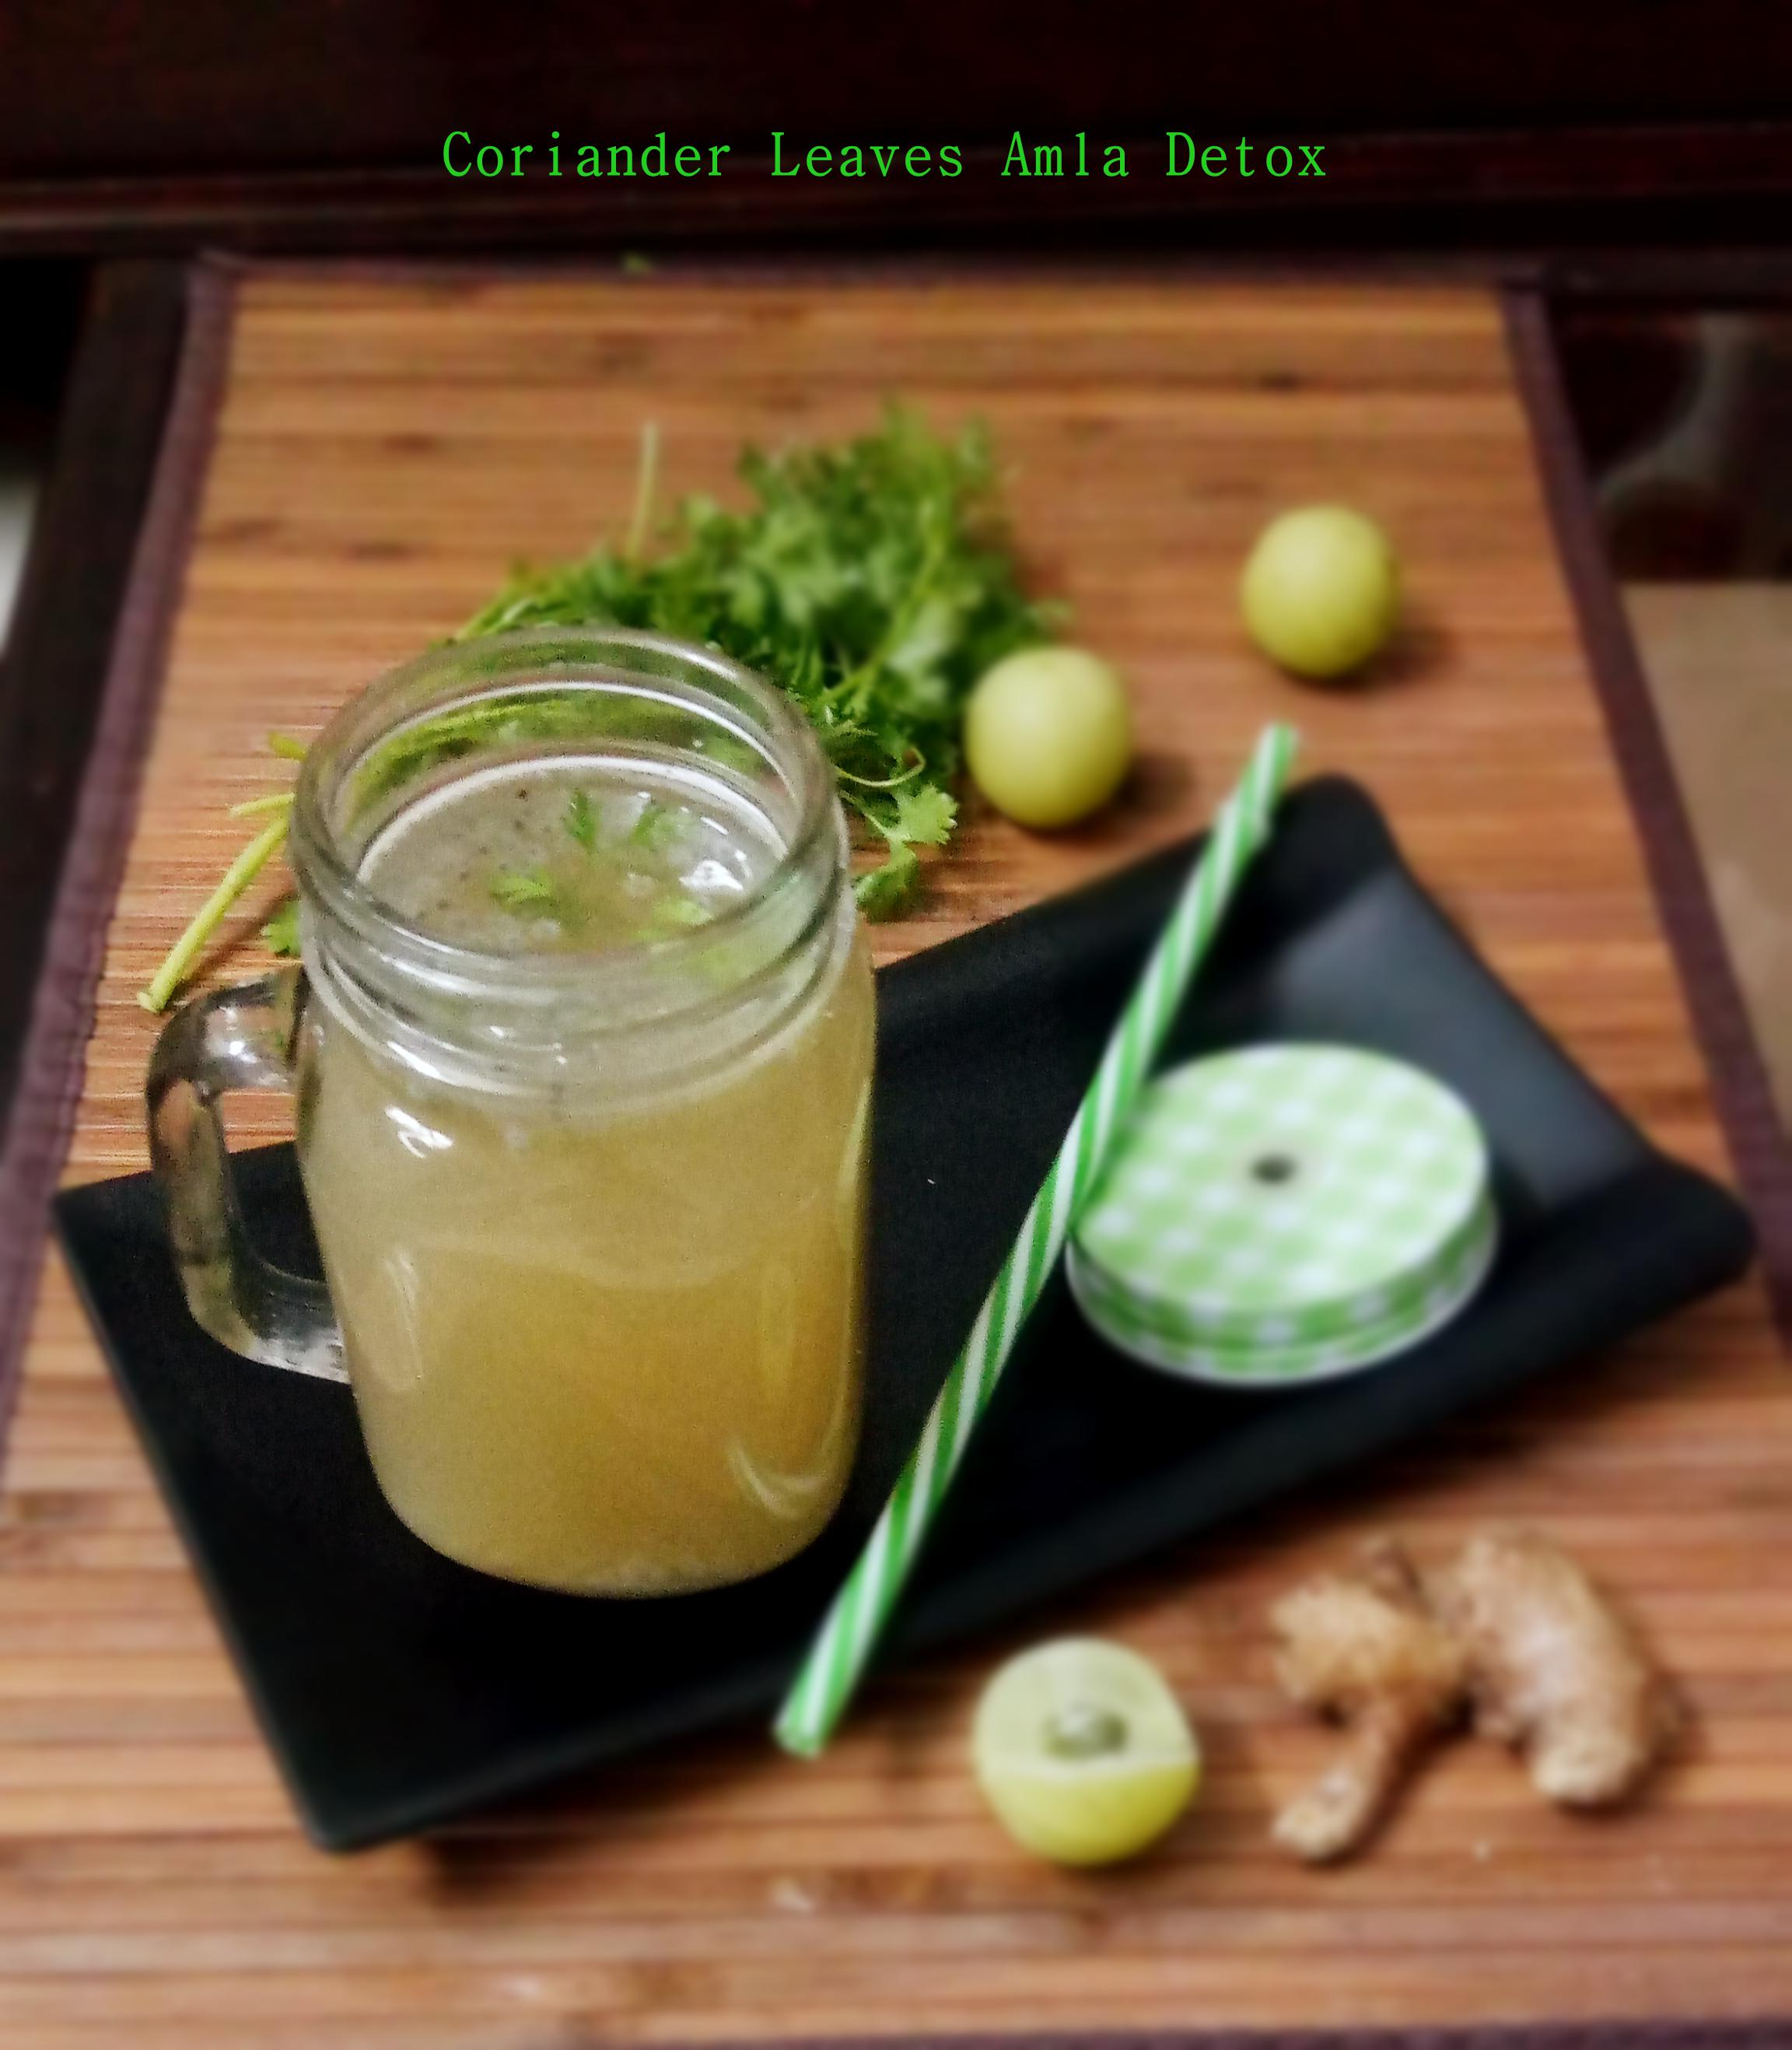 Corinader leaves and amla Detox